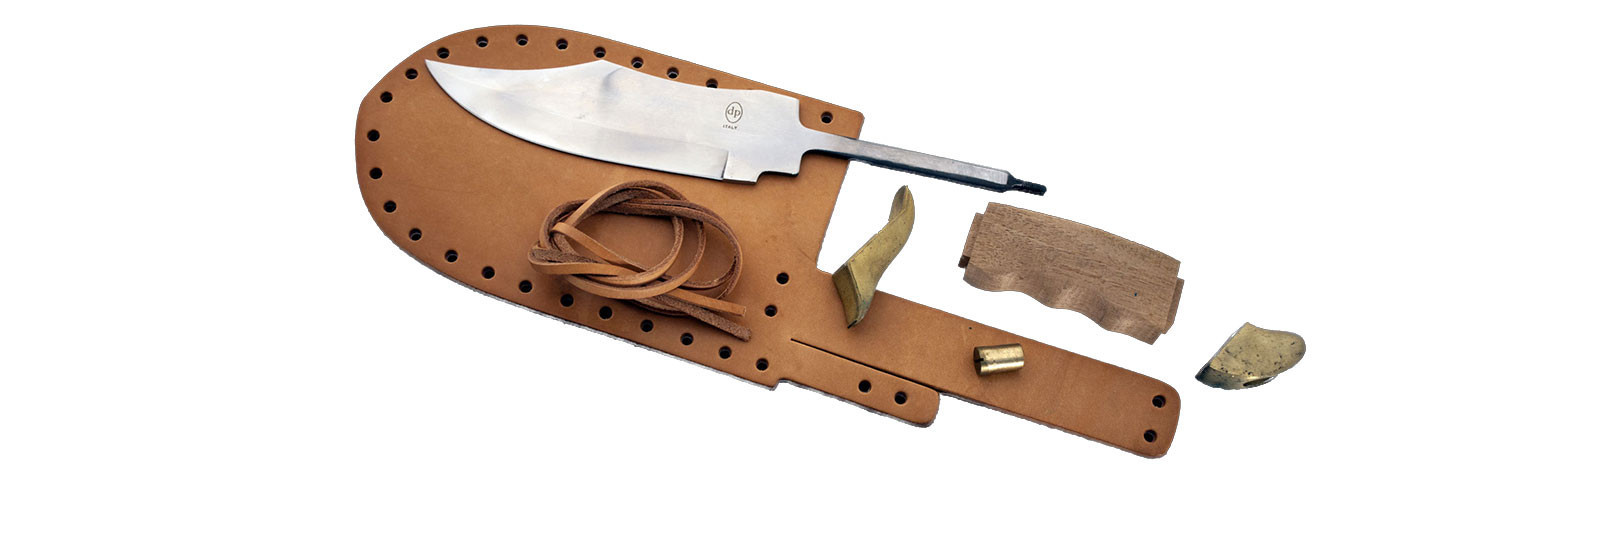 Trapper Knife kit with sheath